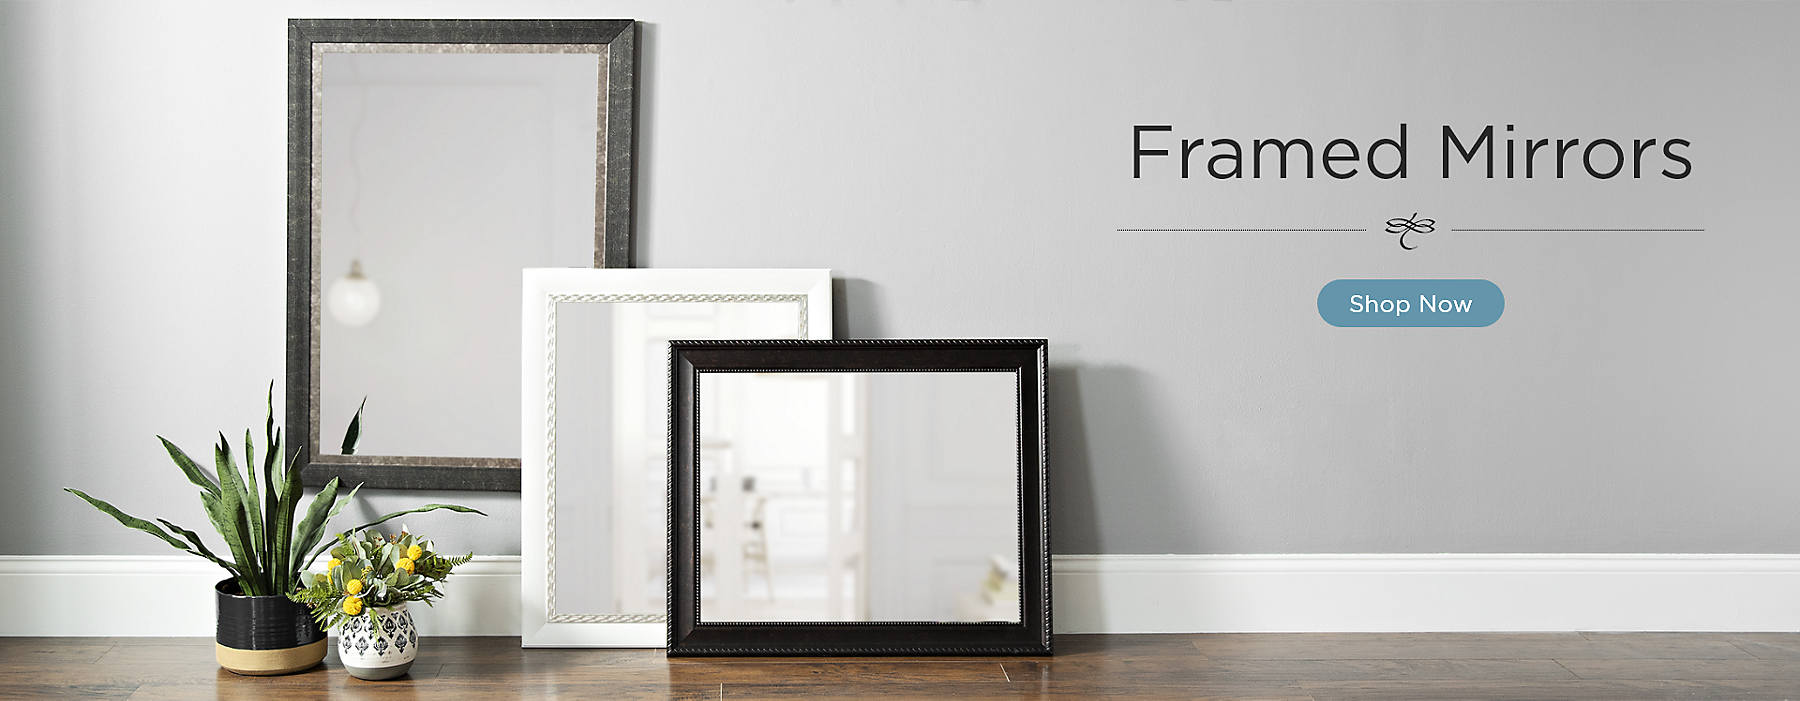 Framed Mirrors Shop Now